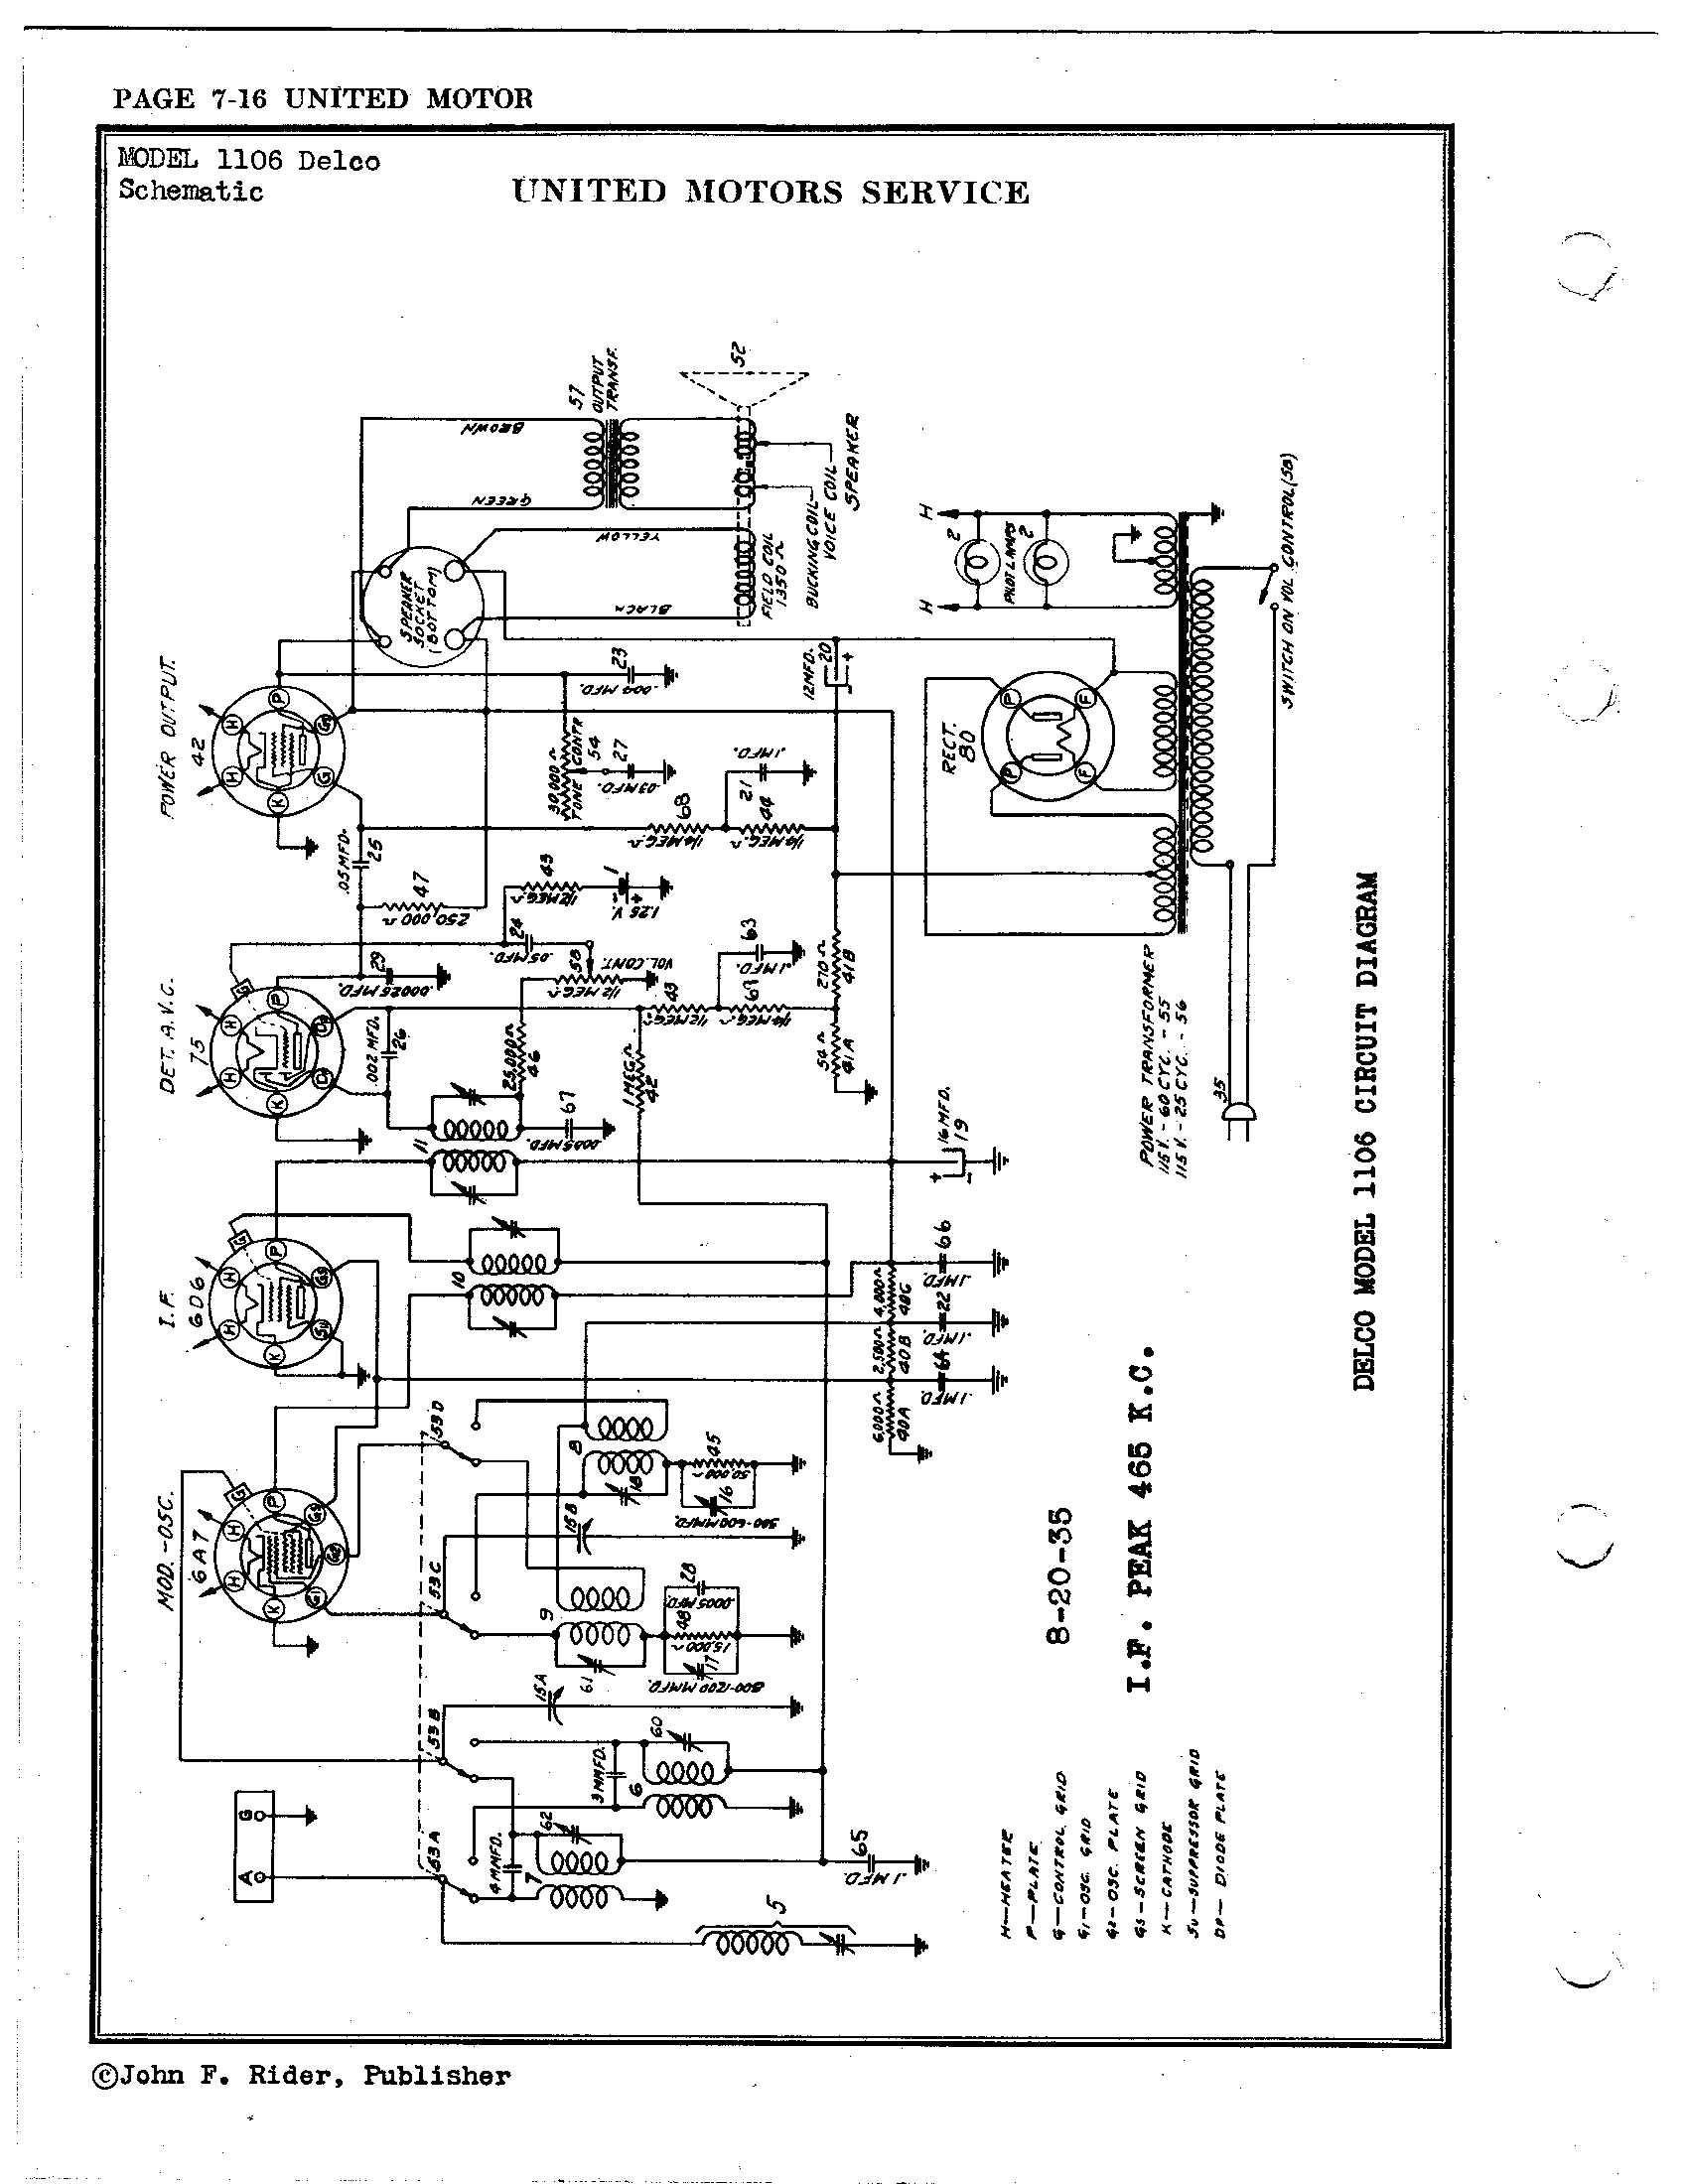 [DIAGRAM] Chevrolet Speakers Wiring Diagram FULL Version